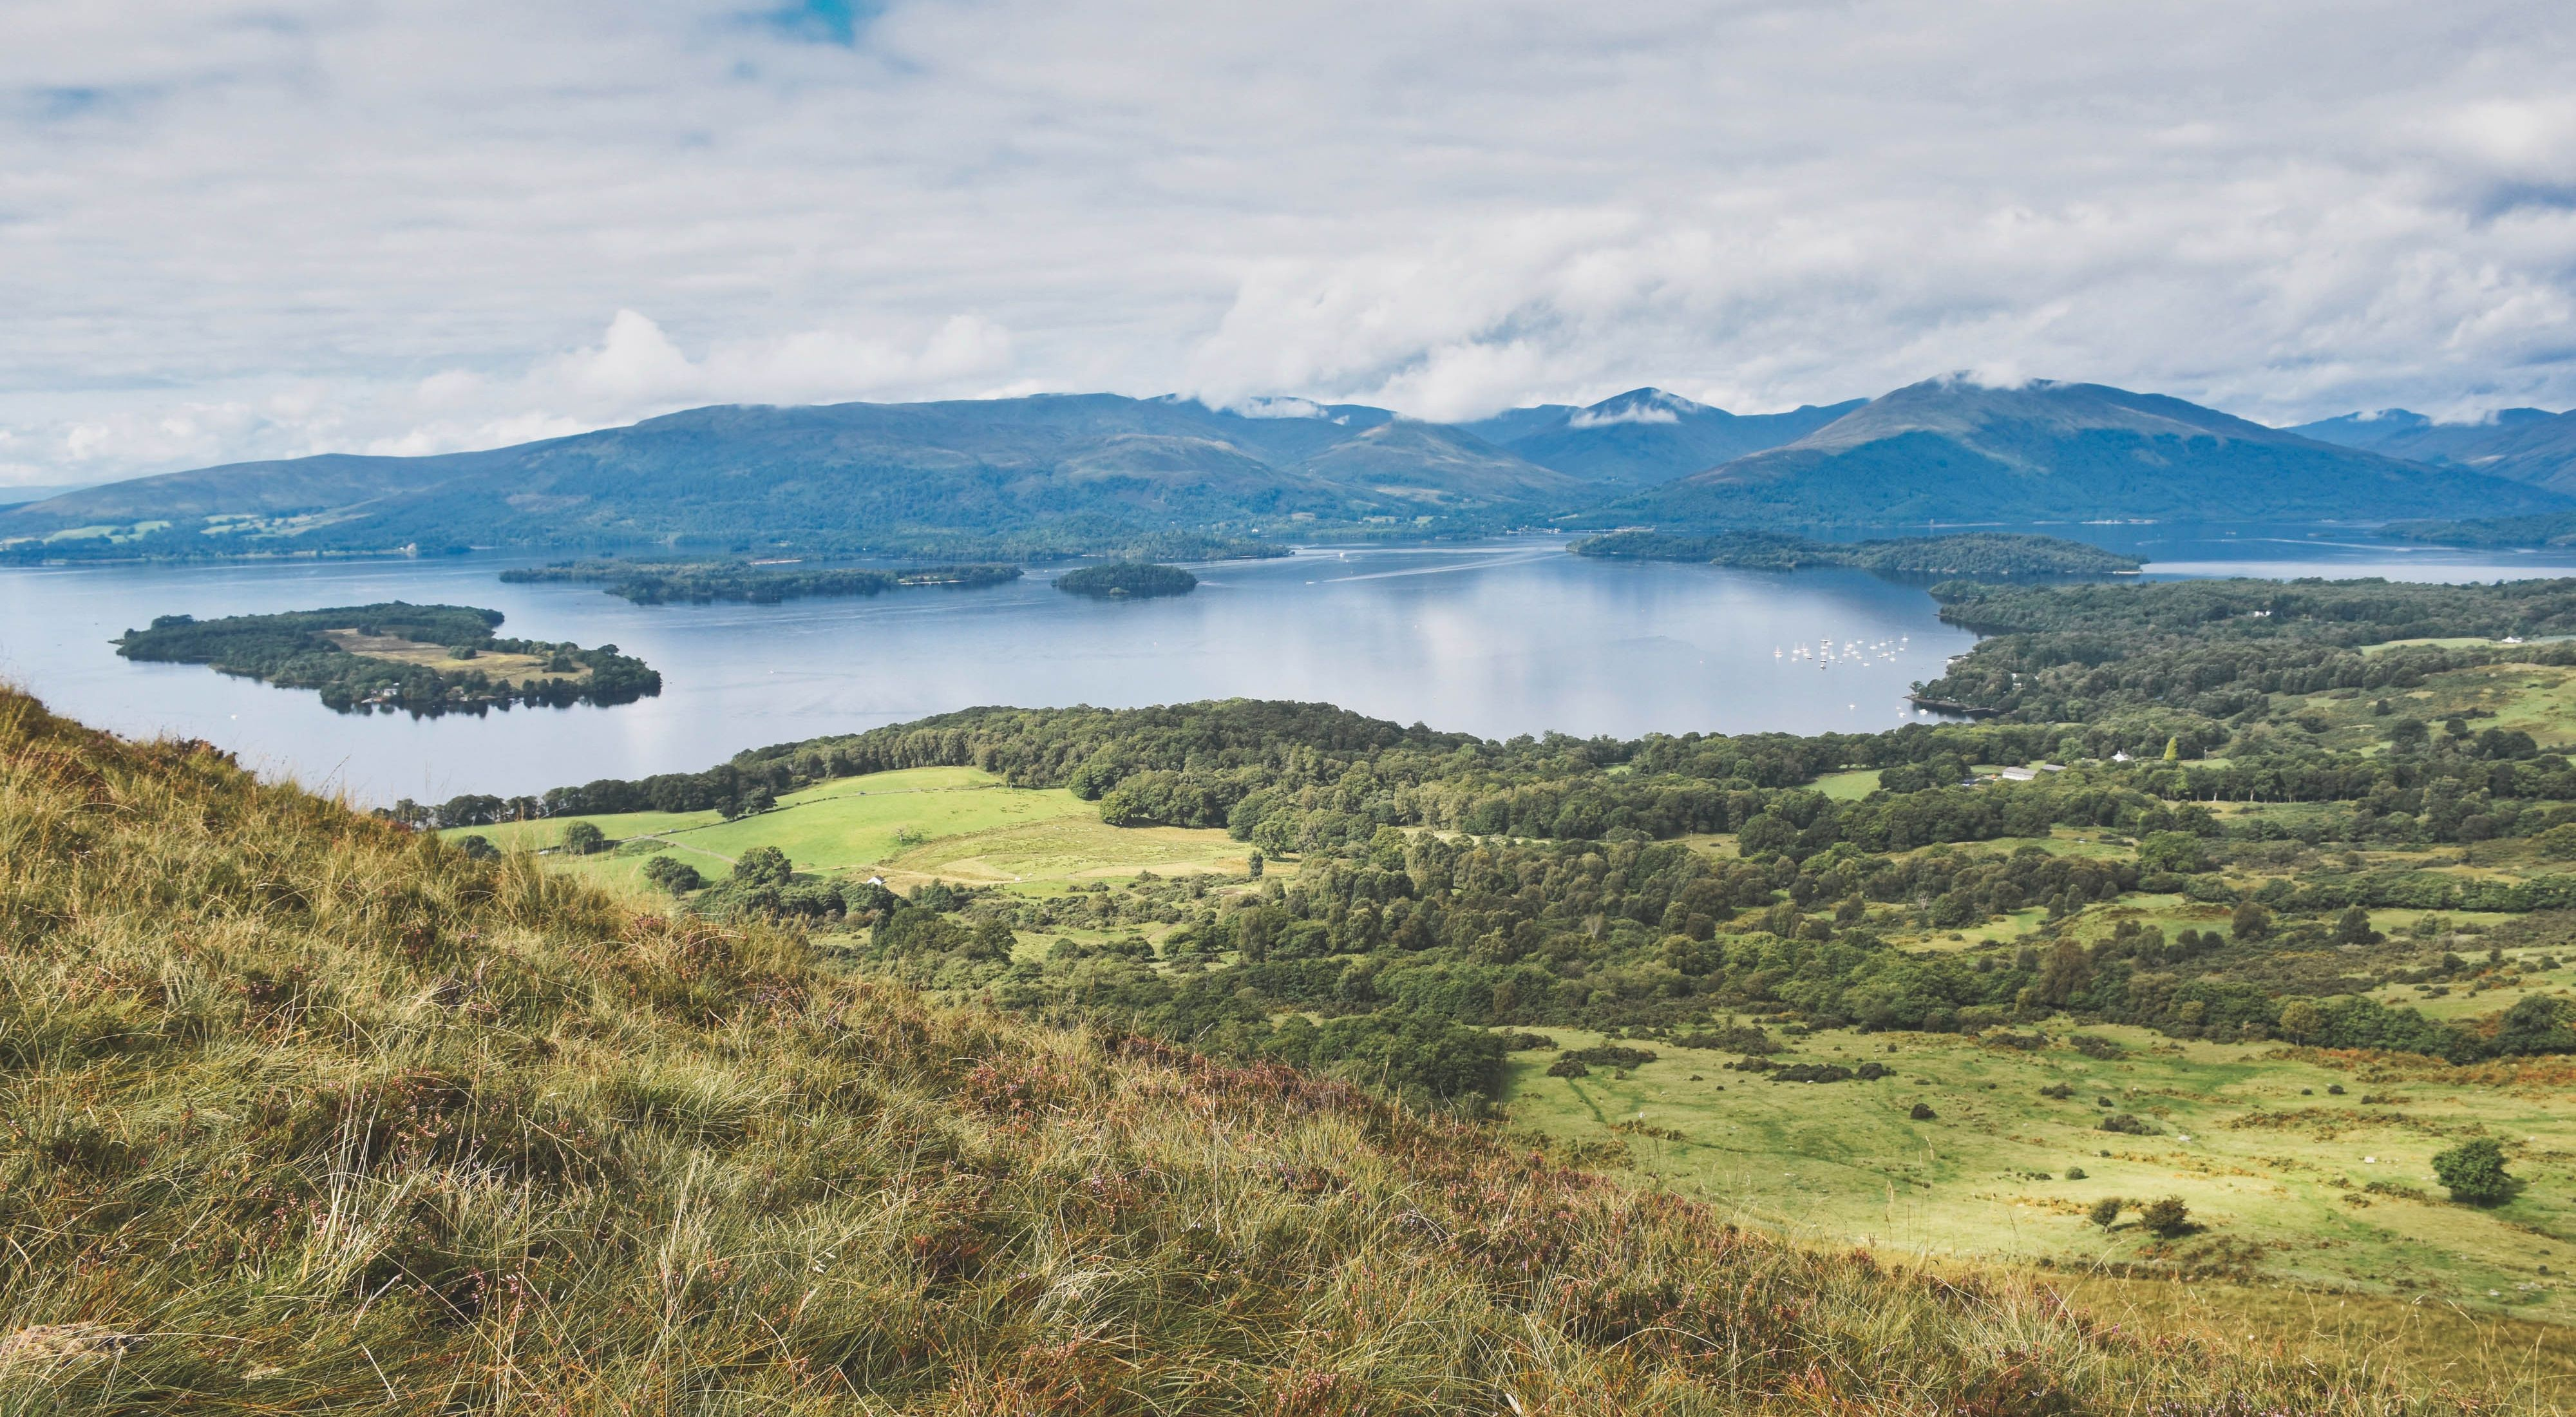 Oak woodlands and rolling hills of Scotland's Loch Lomond.